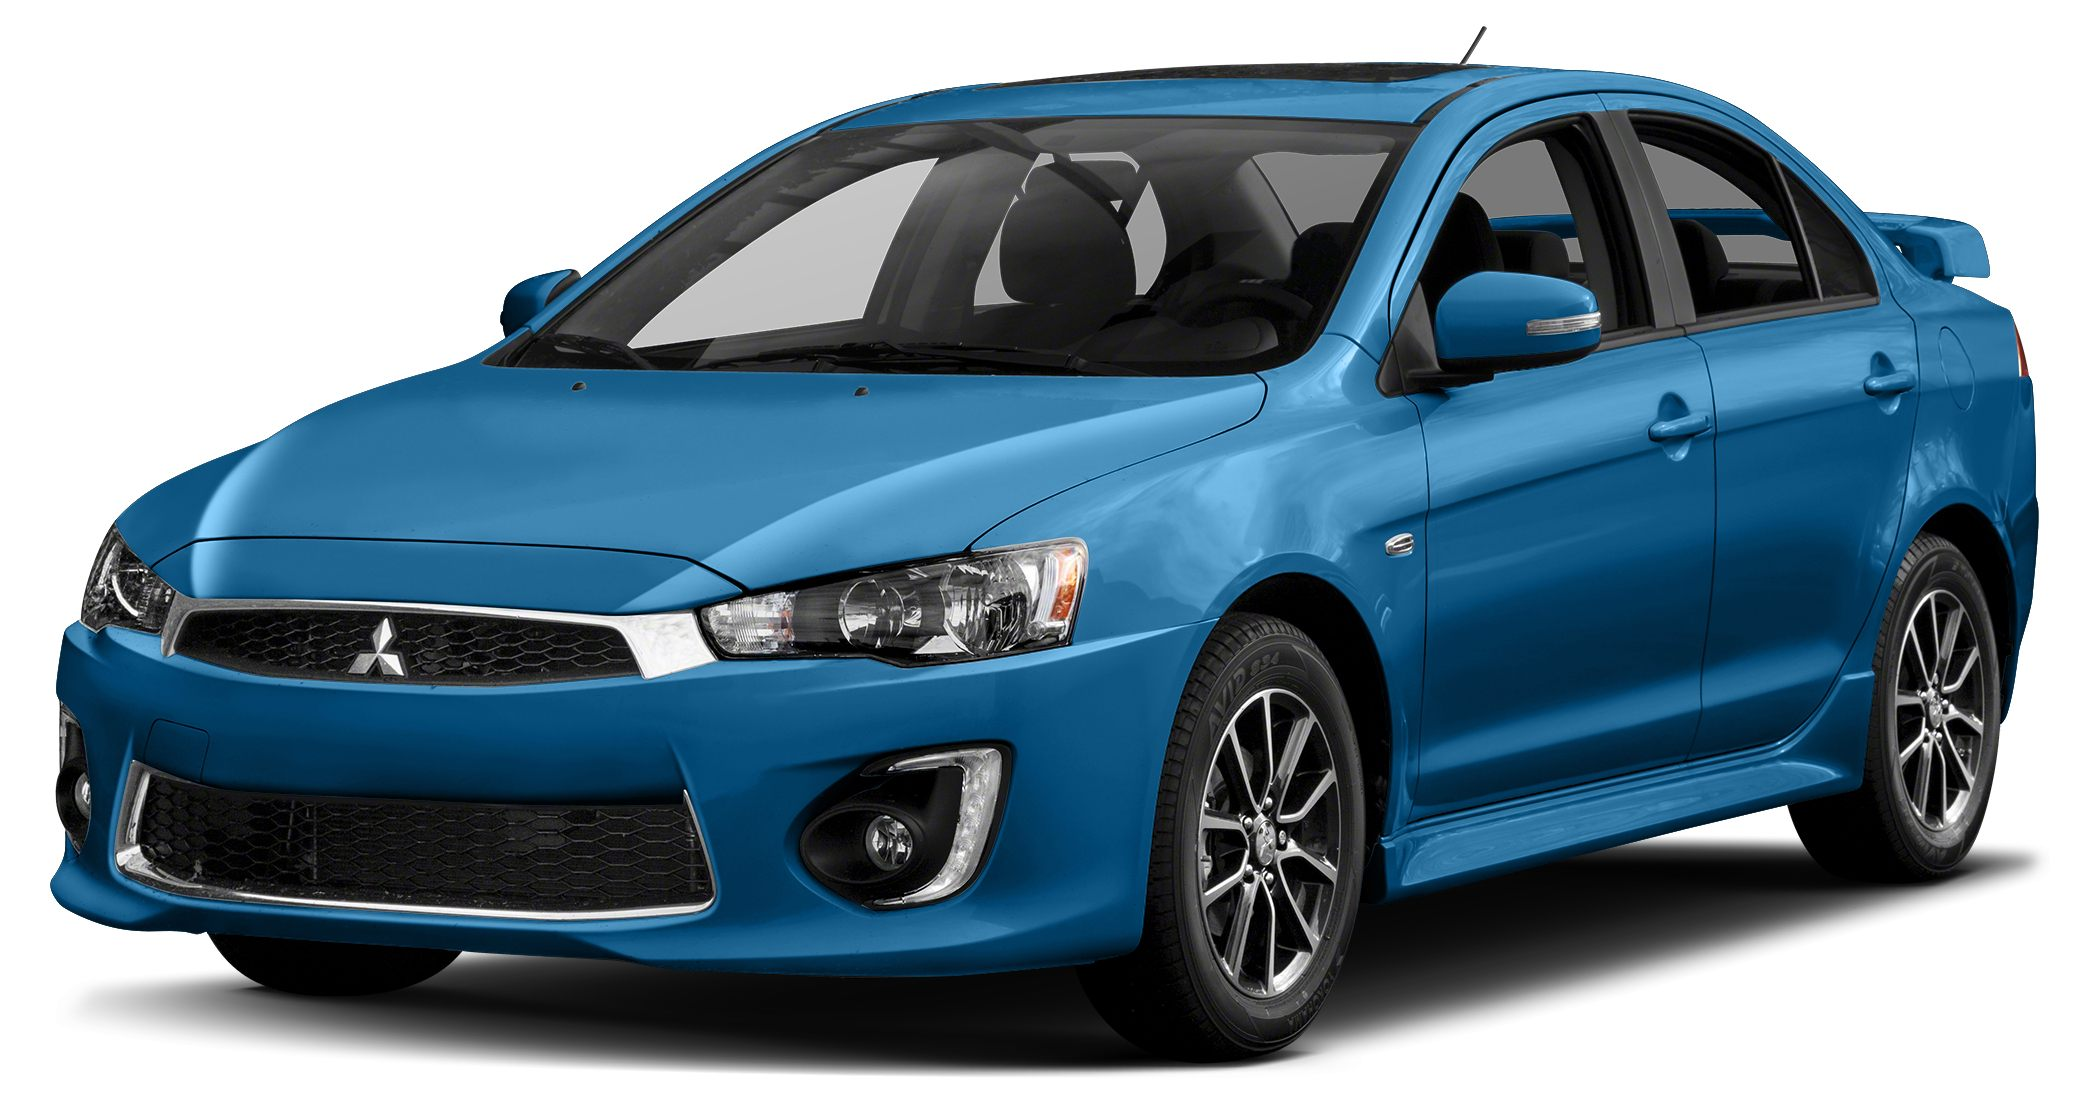 2016 Mitsubishi Lancer SE The Mitsubishi Lancer is a unique sedan that is a great value with an im